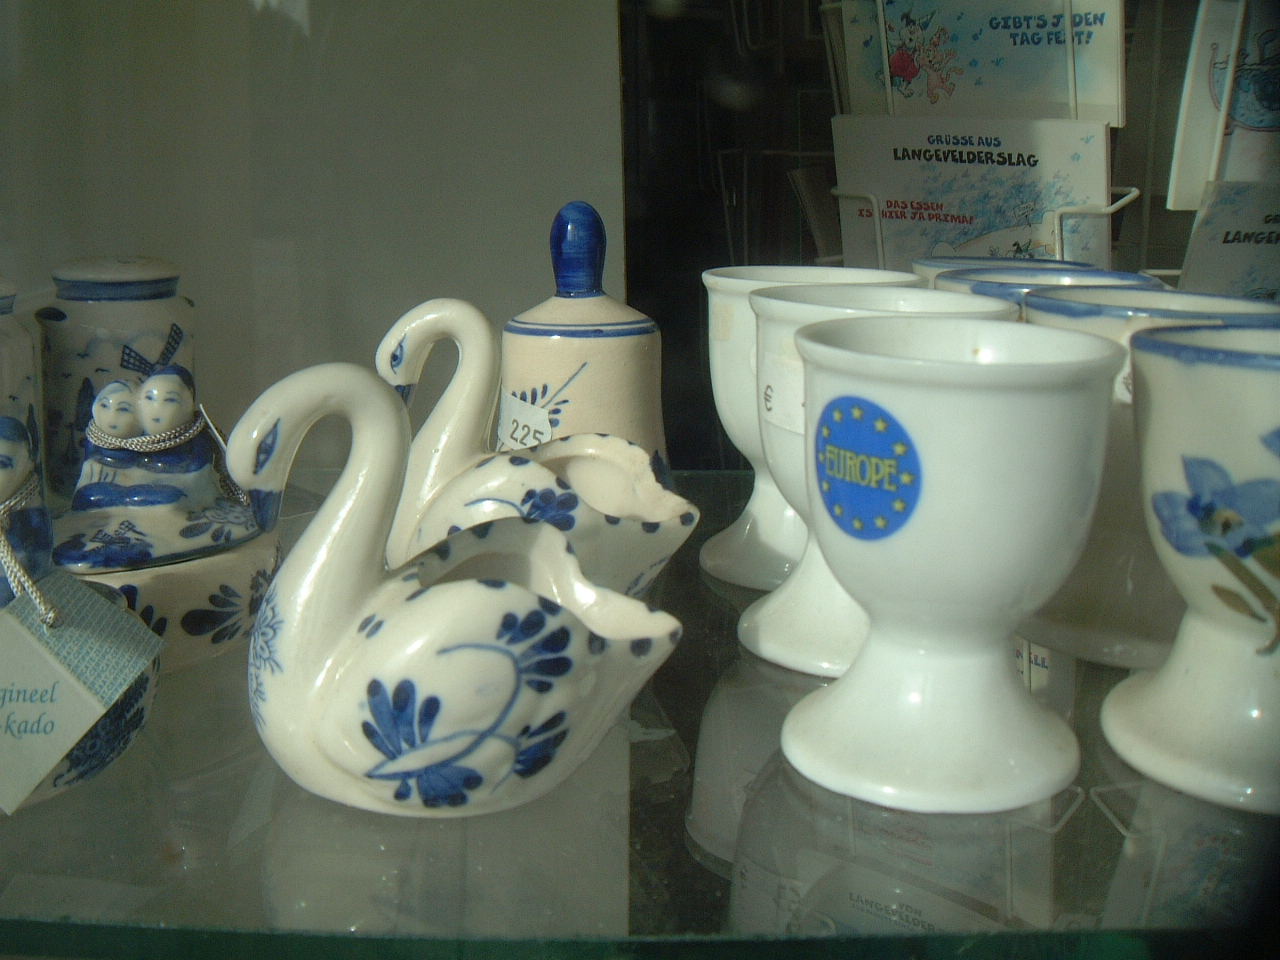 maartent swans ceramics store products stone sculpture